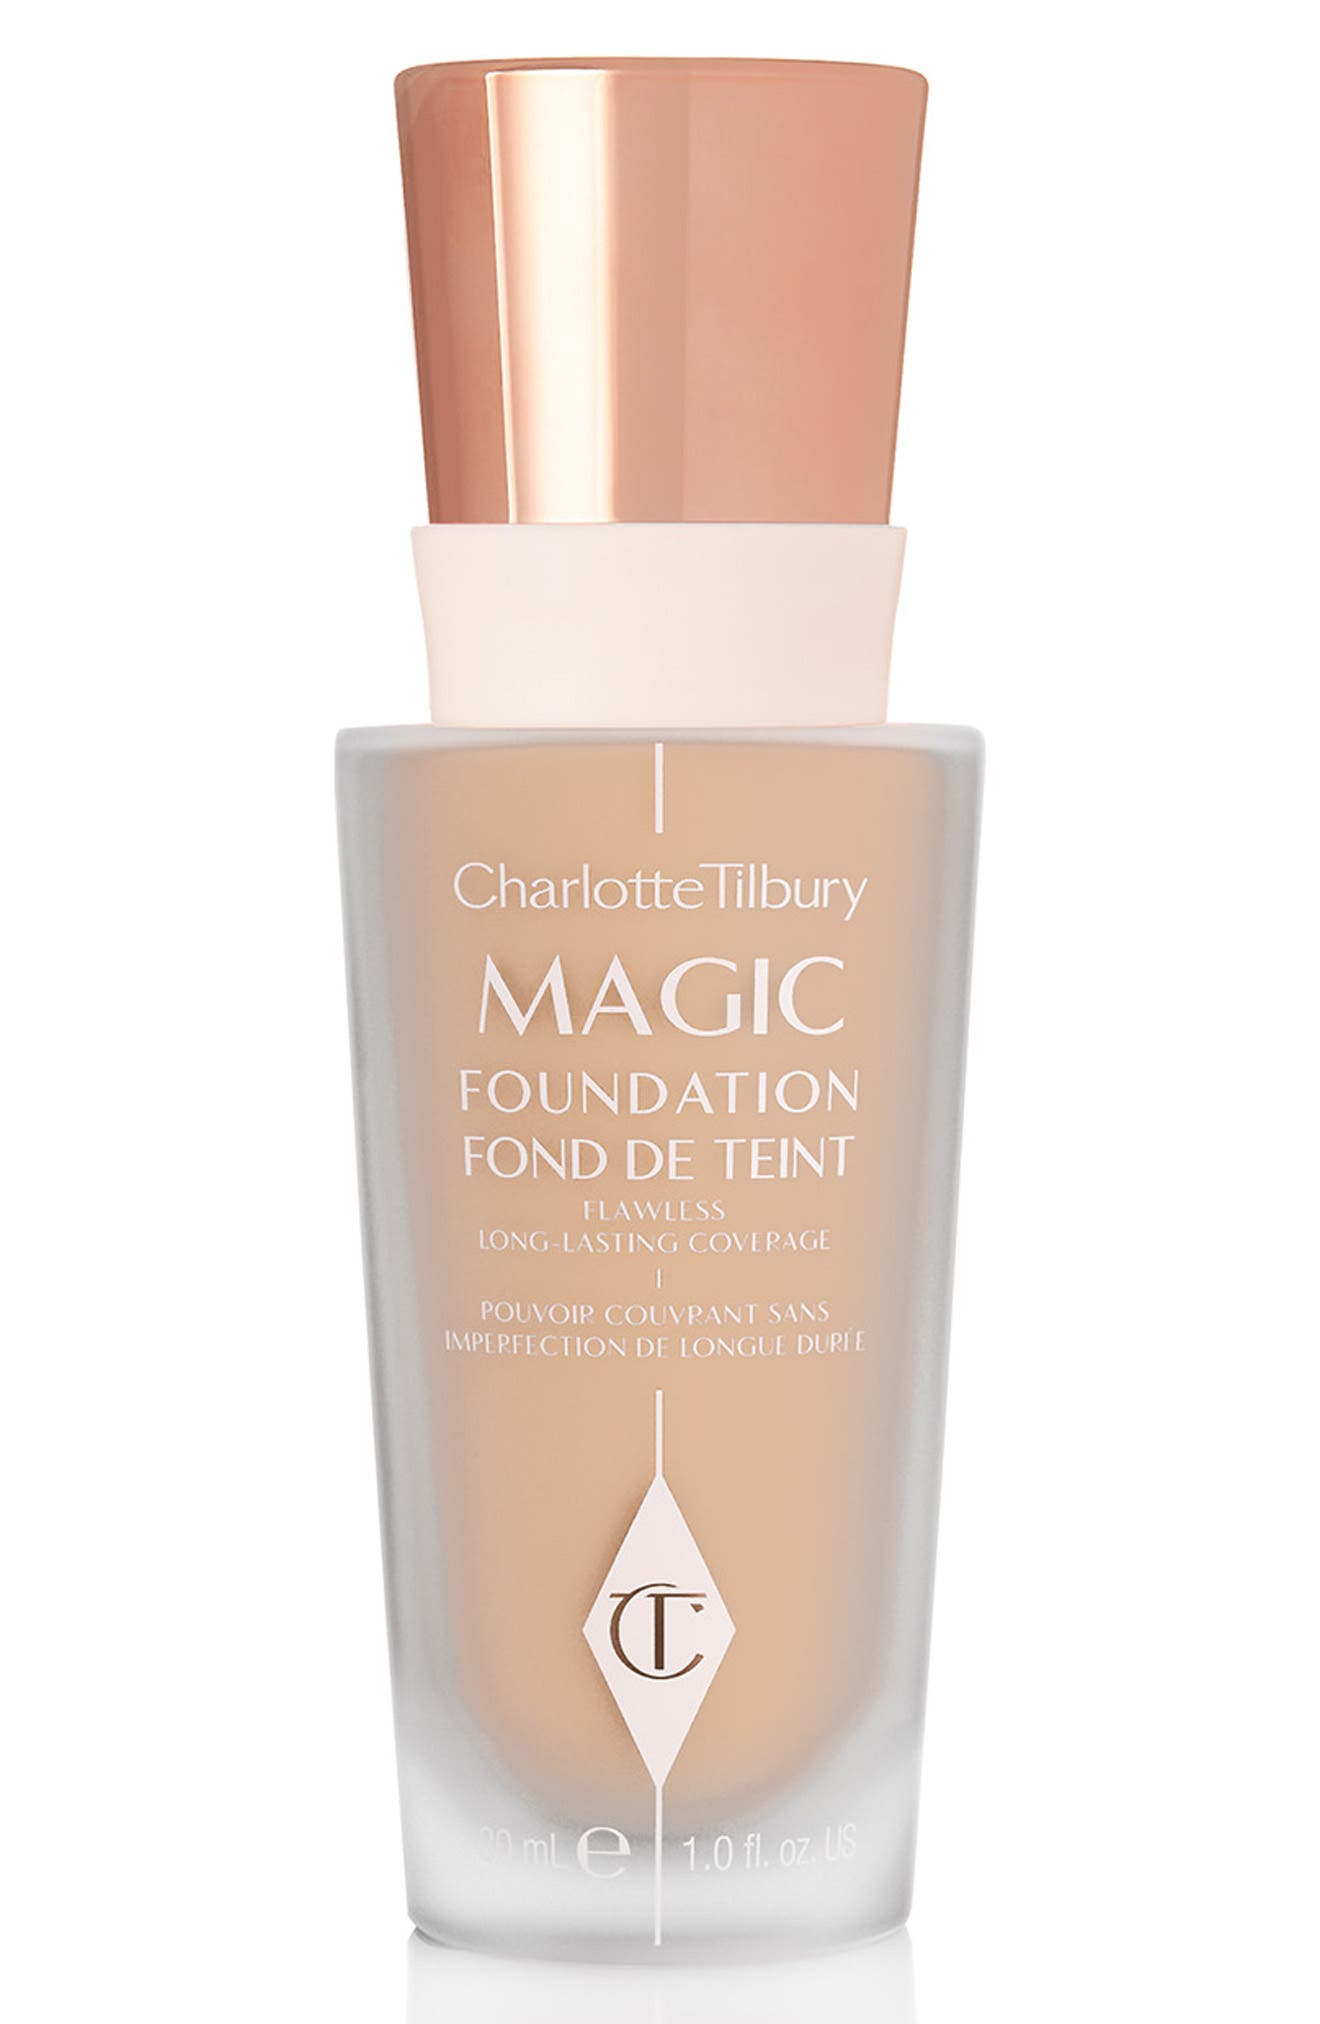 CHARLOTTE TILBURY MAGIC FOUNDATION BROAD SPECTRUM SPF 15 - 5 MEDIUM